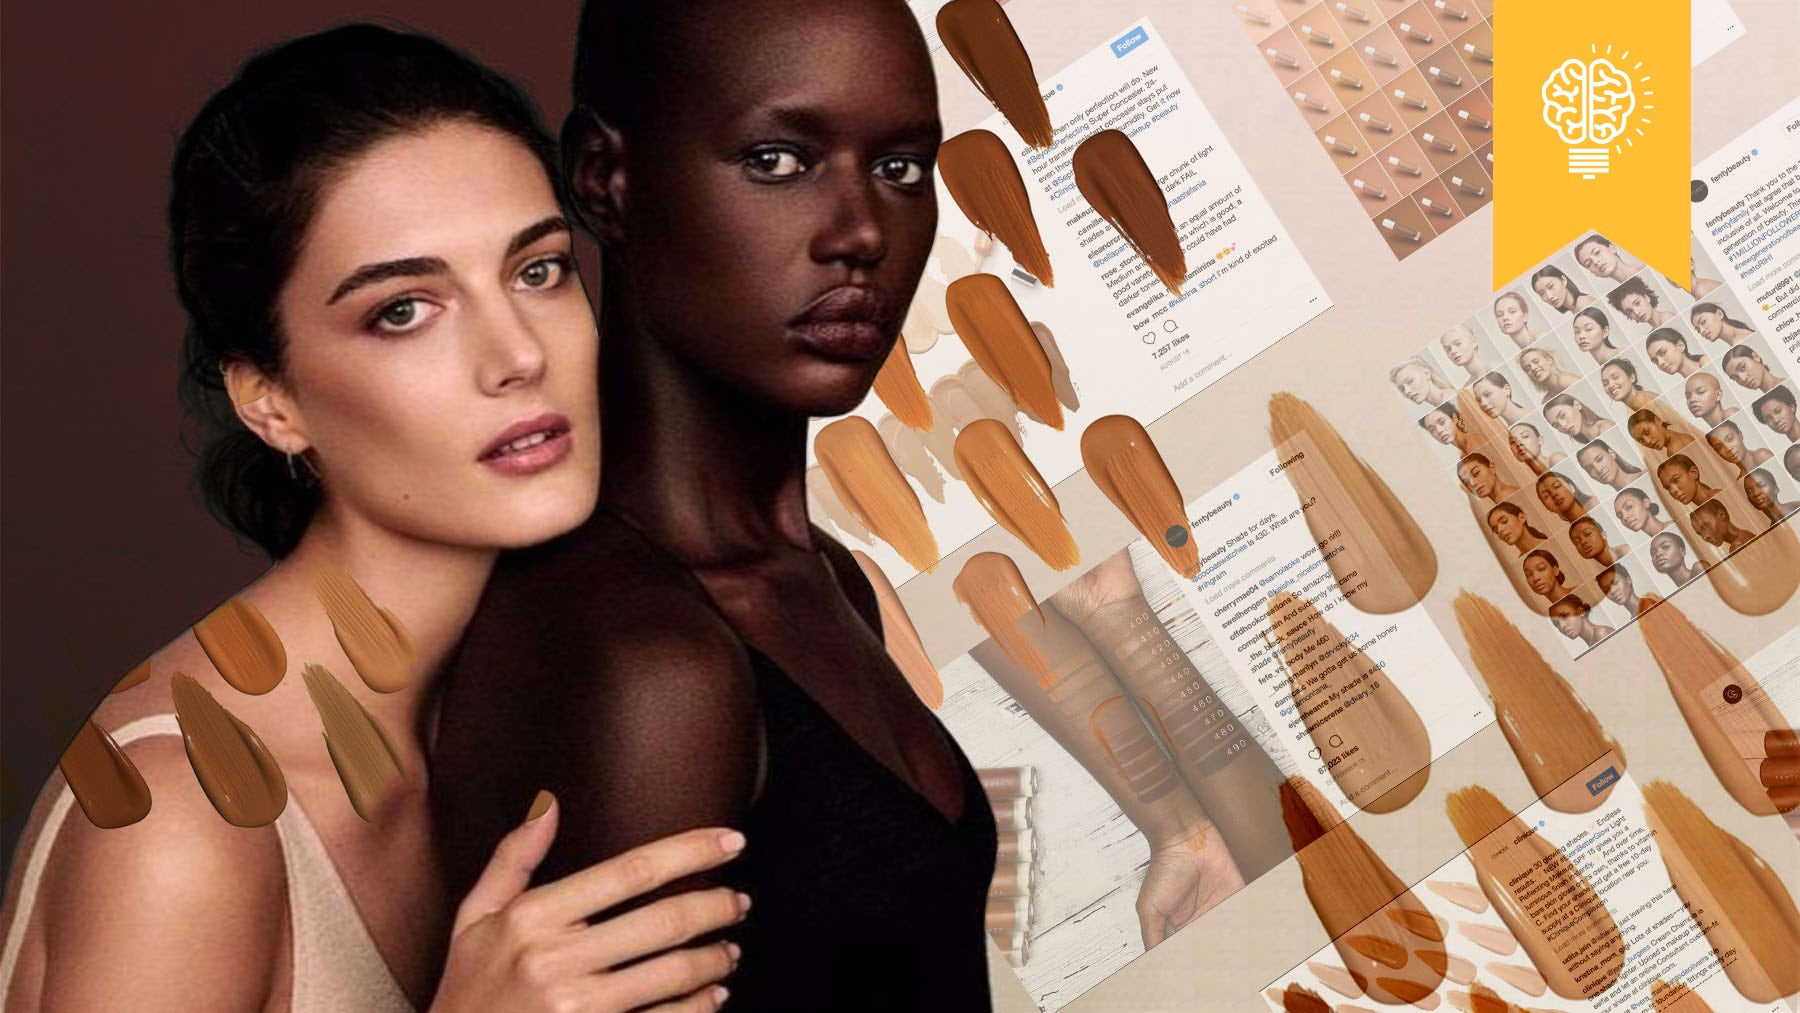 Cover FX's Nude is Not Beige campaign, and Instagram images from Clinique, Fenty Beauty, Estée Lauder | Illustration by Nerea Verdejo Blanco for BoF